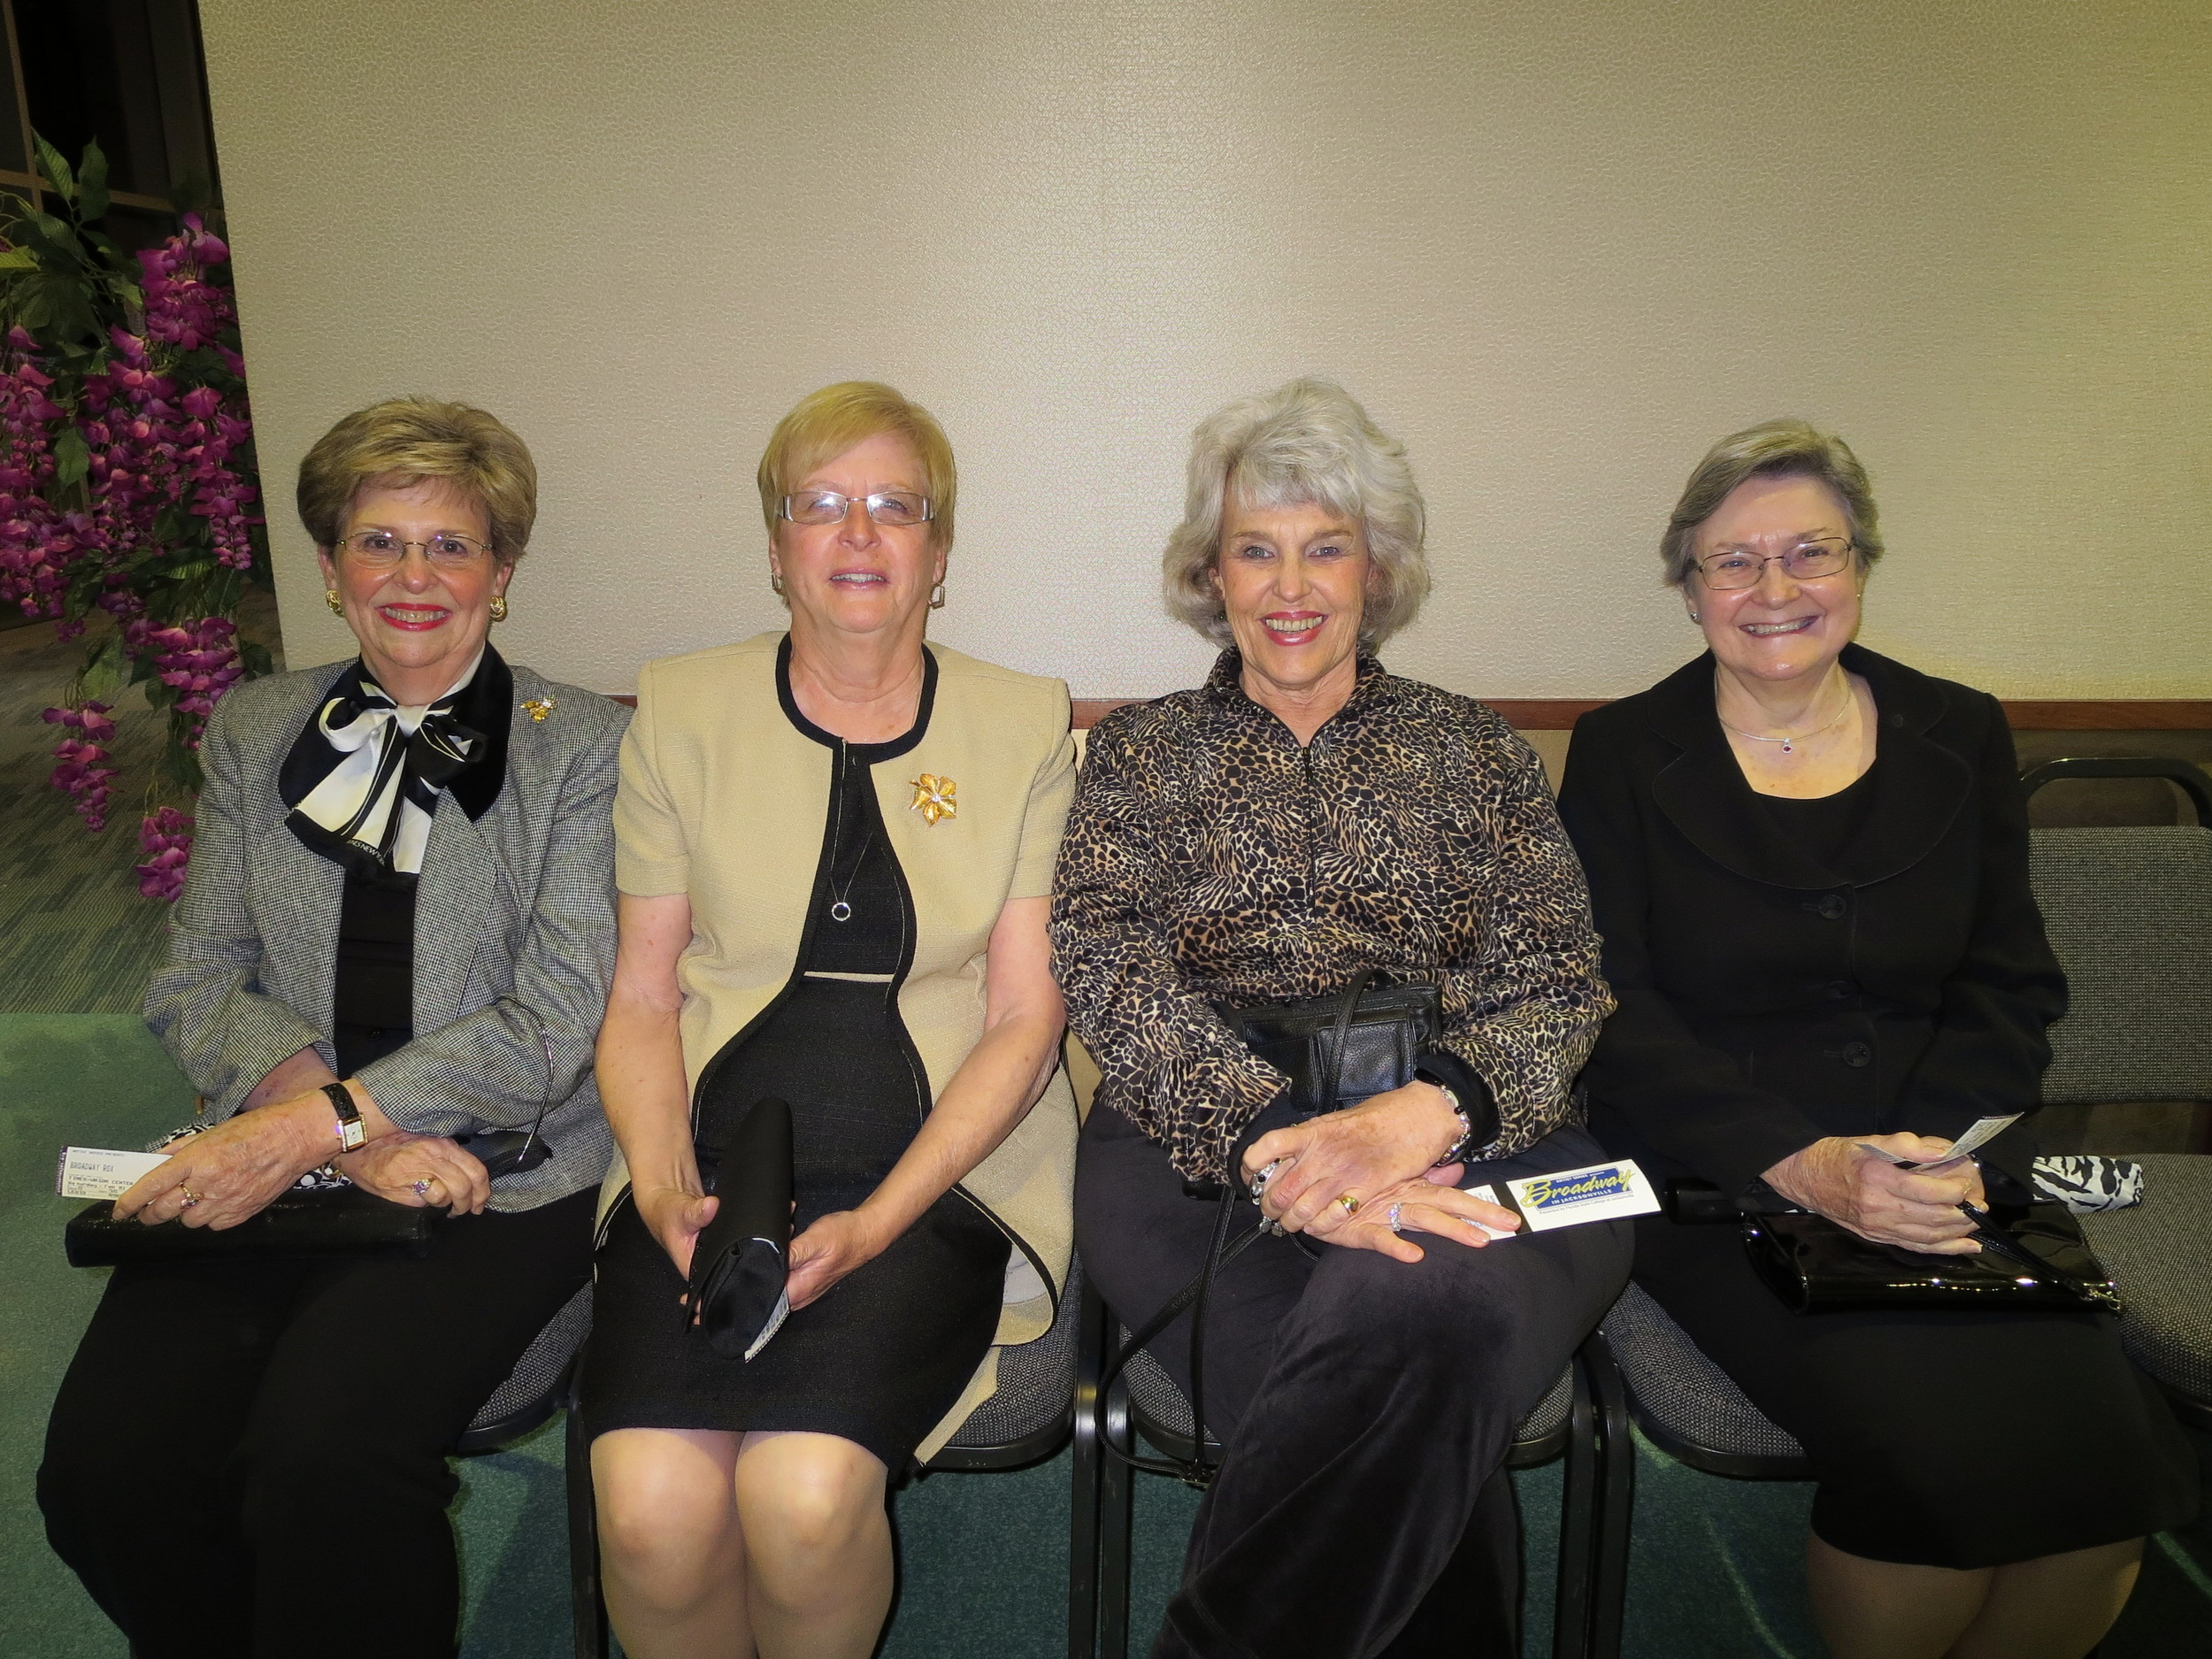 Beth Harvey, Helen Mabe, Phyllis Lewis, Betty Stilley